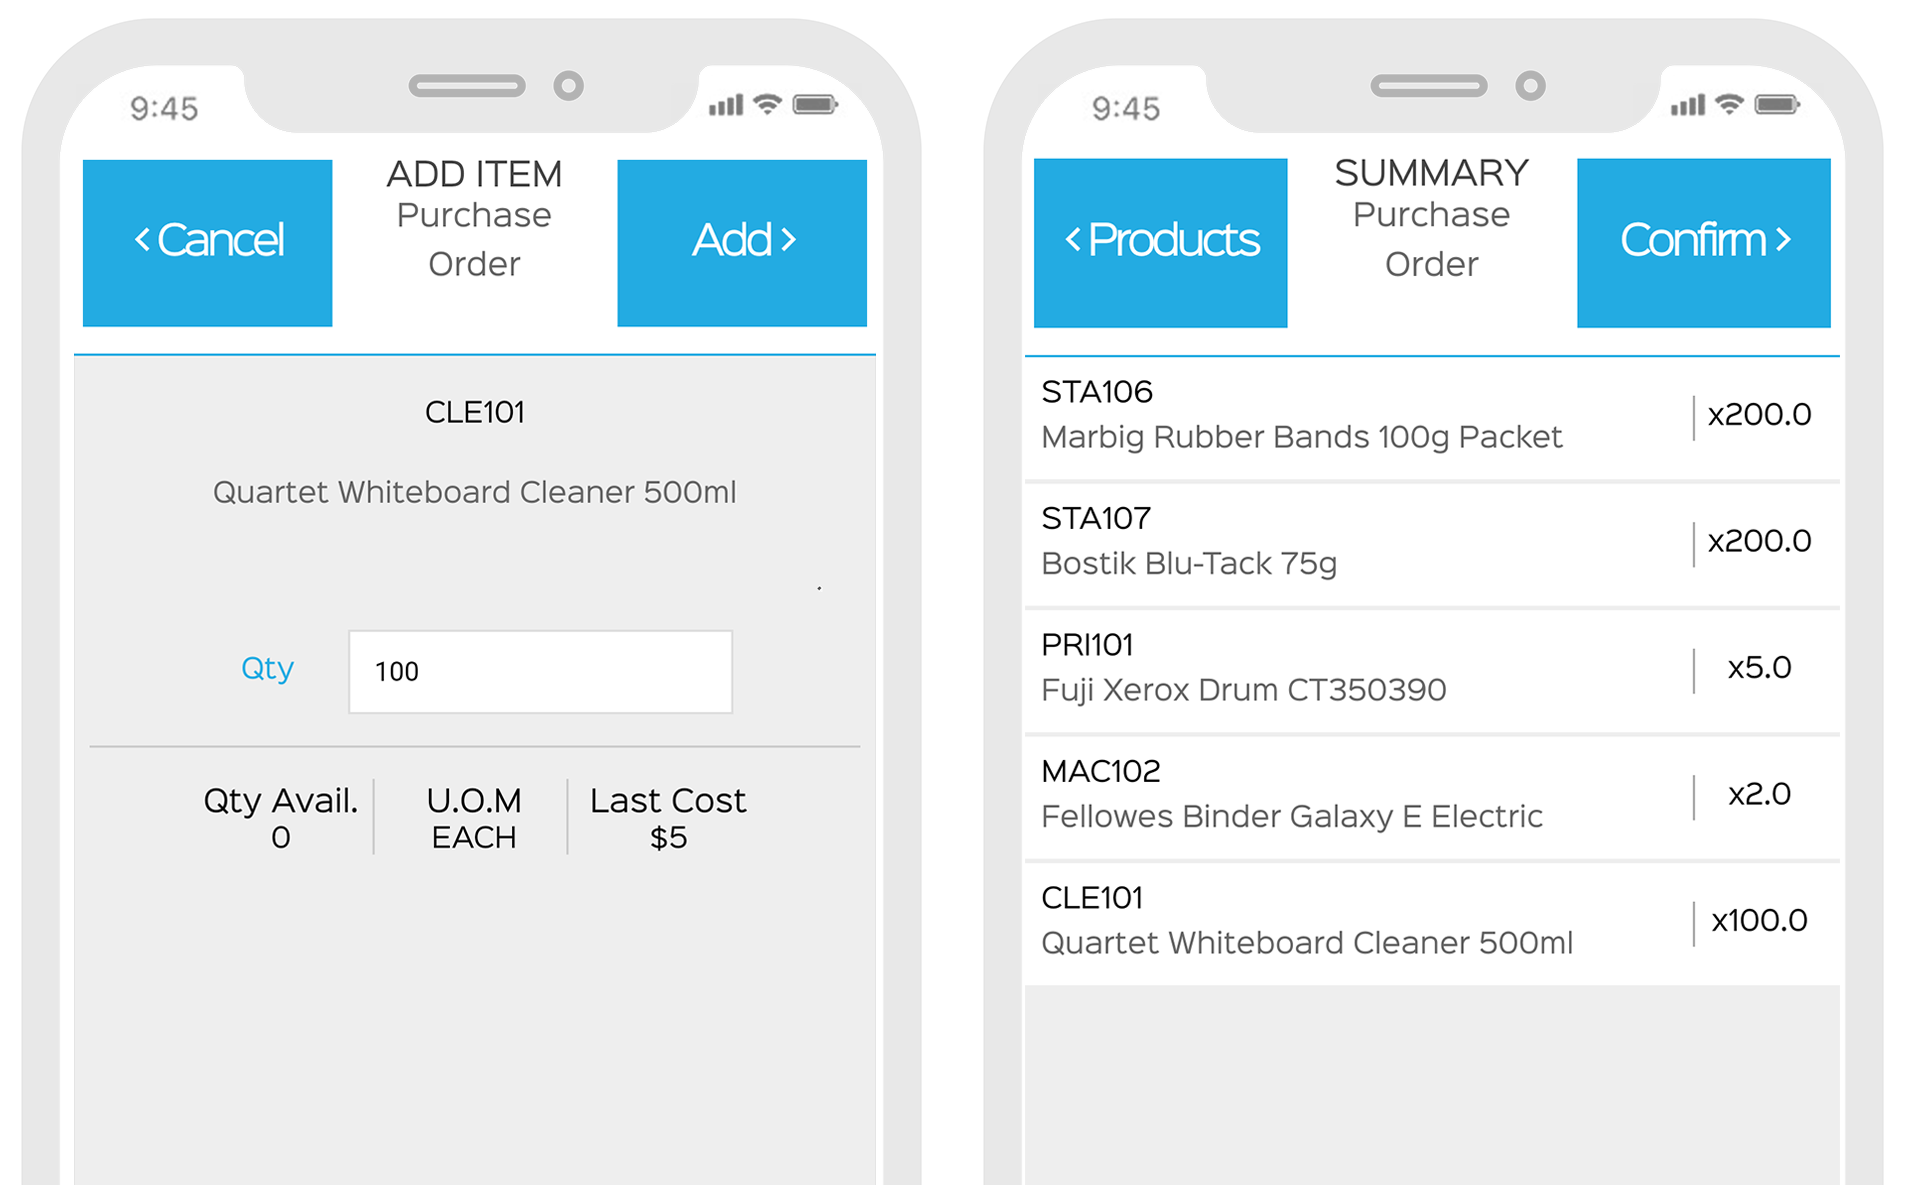 create purchase orders in the EZEMobile app by barcode scanning products